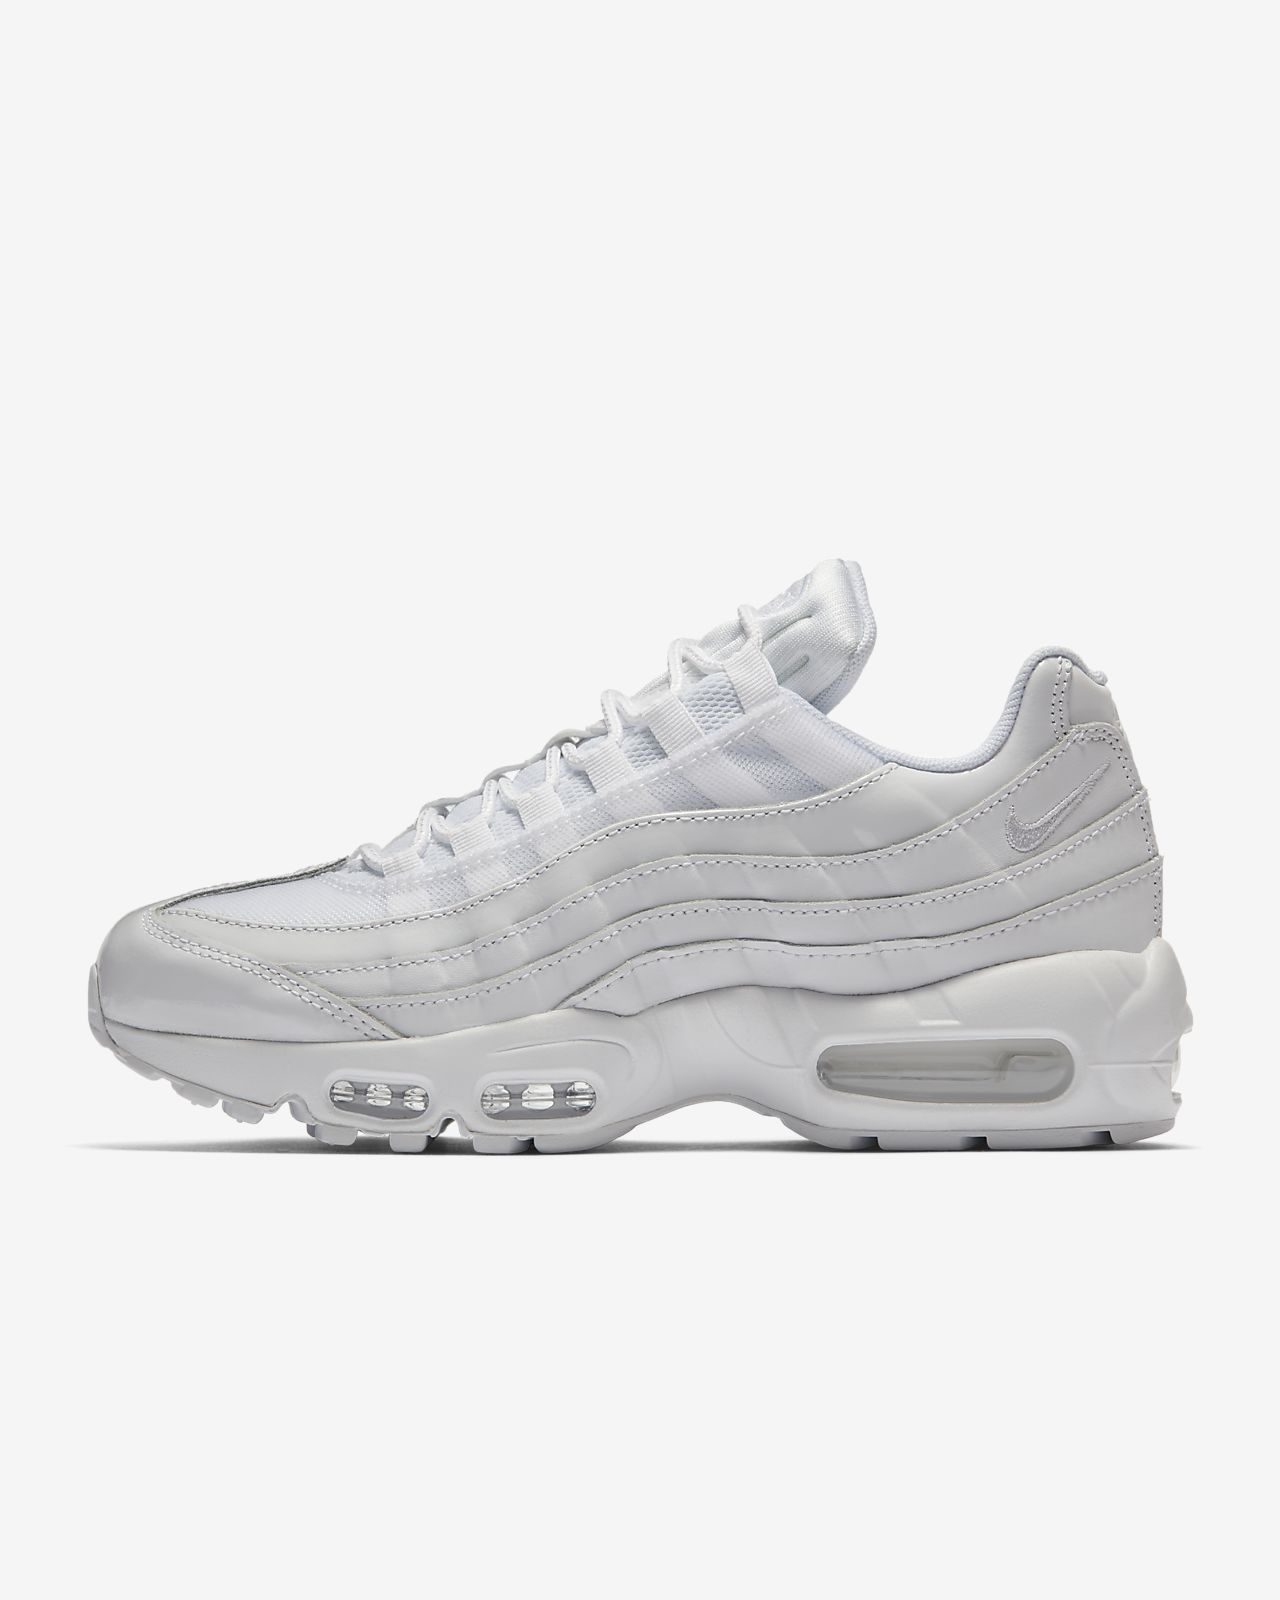 hot products speical offer picked up lace up in promo codes for whole family air max 95 blanche euro ...